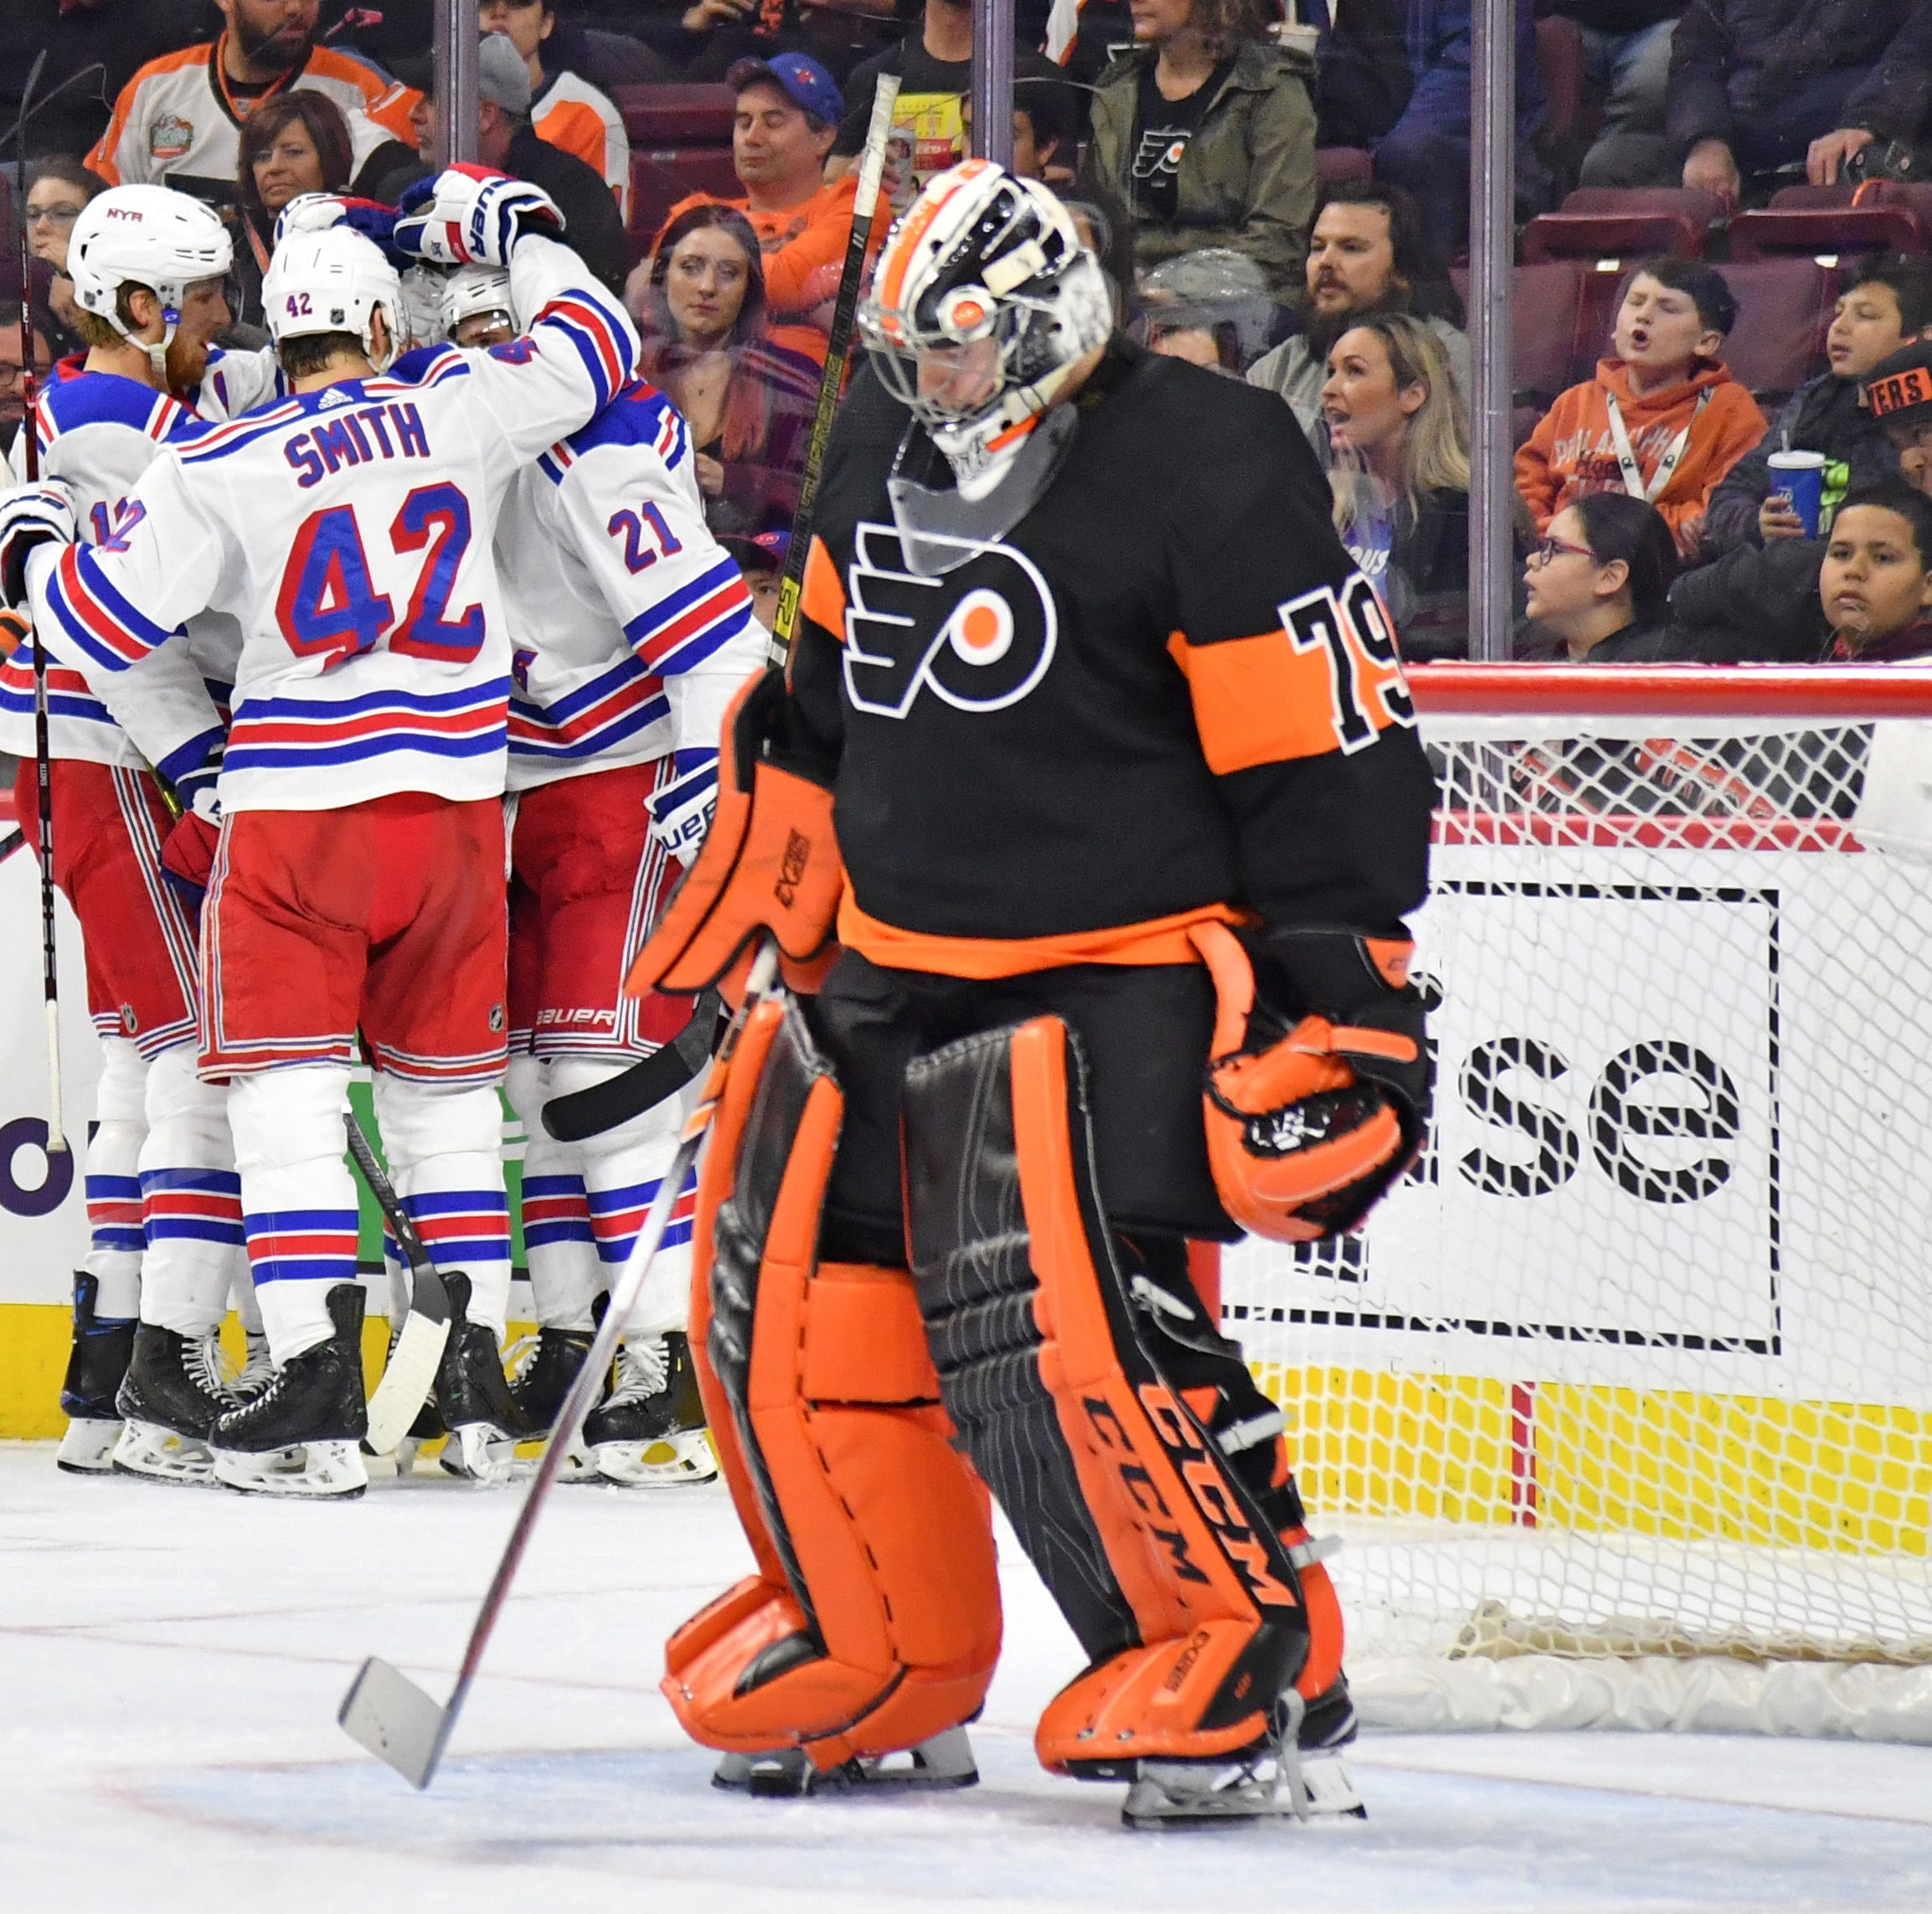 Flyers 5 takeaways: With no hopes of playoffs, jobs are on the line